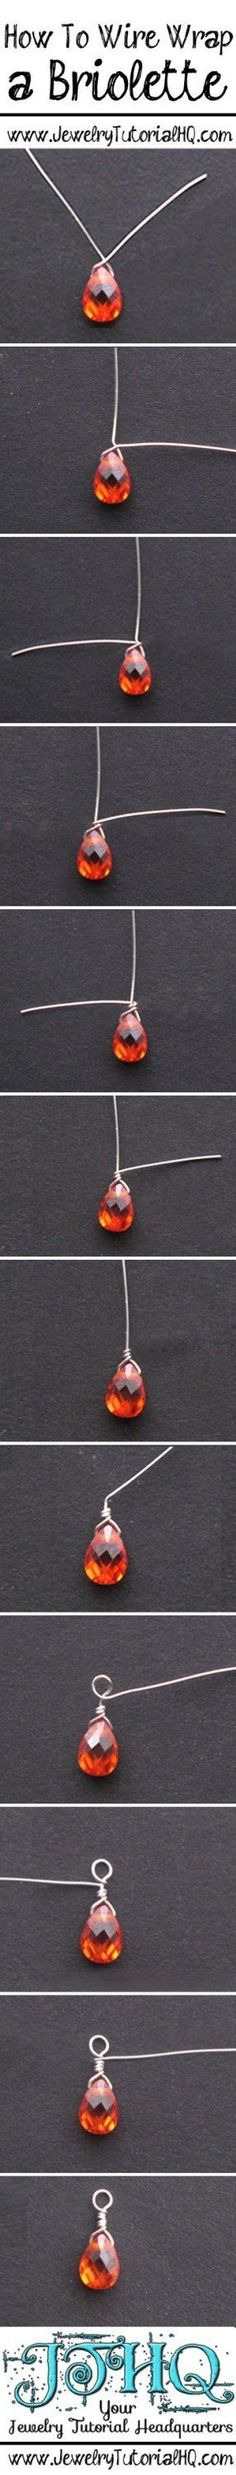 how to wire wrap a briolette                                                                                                                                                      More Wire Wrapped Jewelry, Wire Jewelry, Beaded Jewelry, Jewelery, Handmade Jewelry, Jewelry Storage, Gold Jewelry, Beaded Beads, Beads And Wire